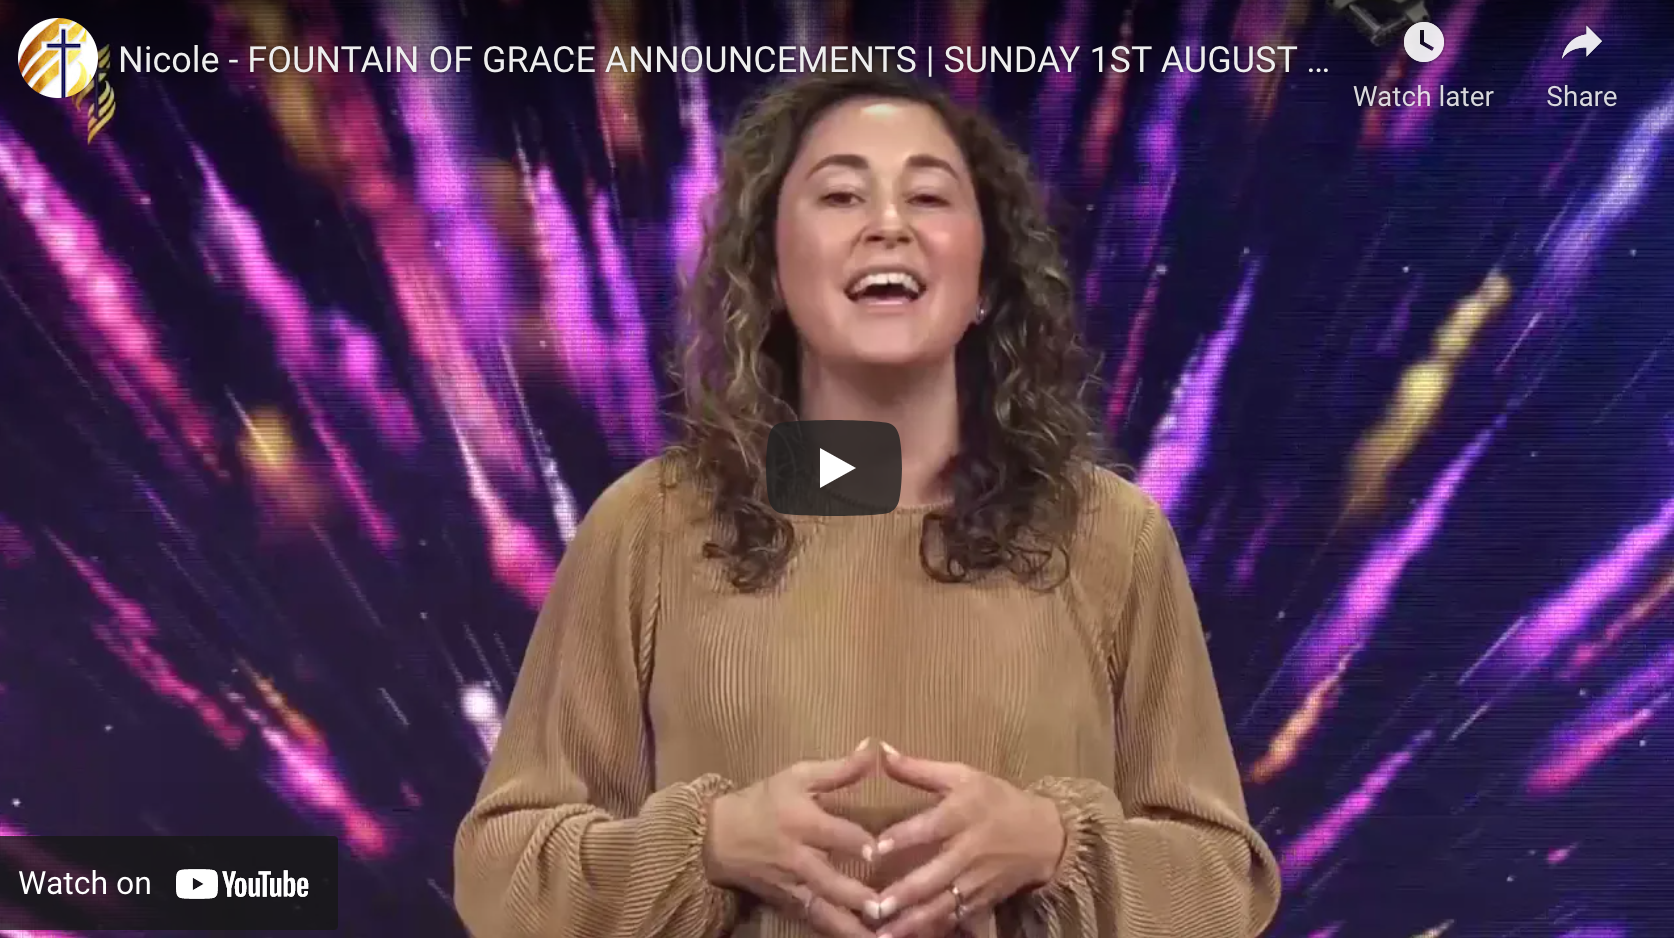 Nicole - FOUNTAIN OF GRACE ANNOUNCEMENTS | SUNDAY 1ST AUGUST 2021